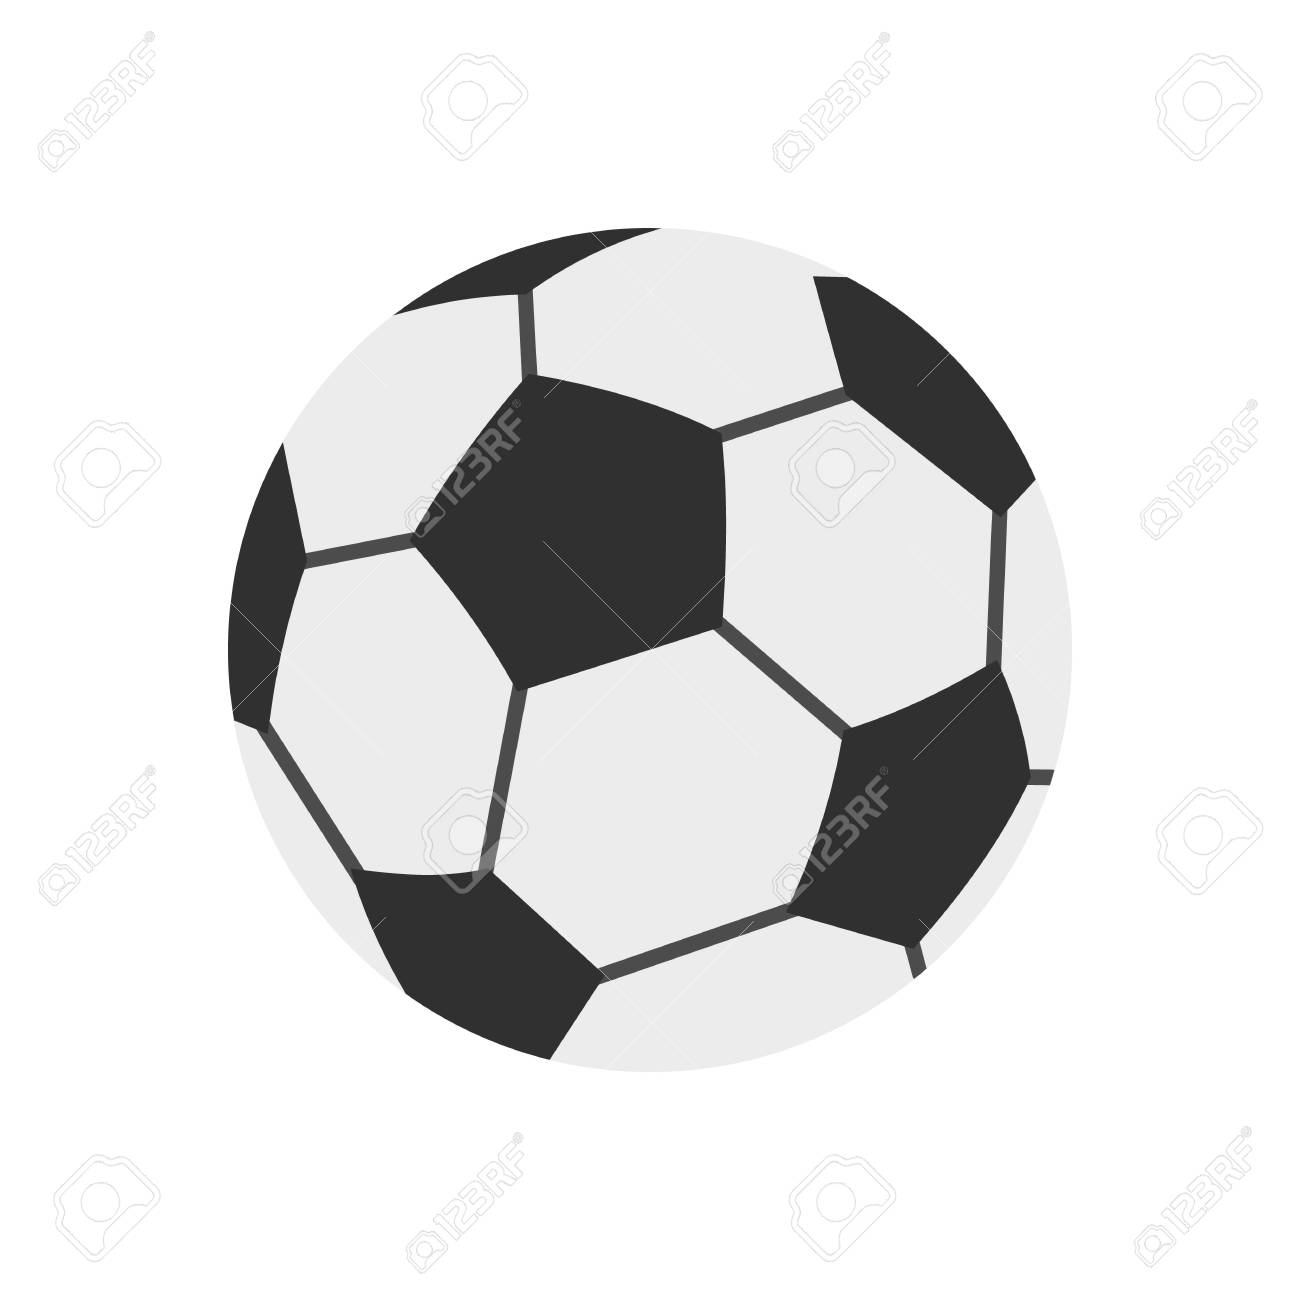 Soccer Ball Icon Flat Style